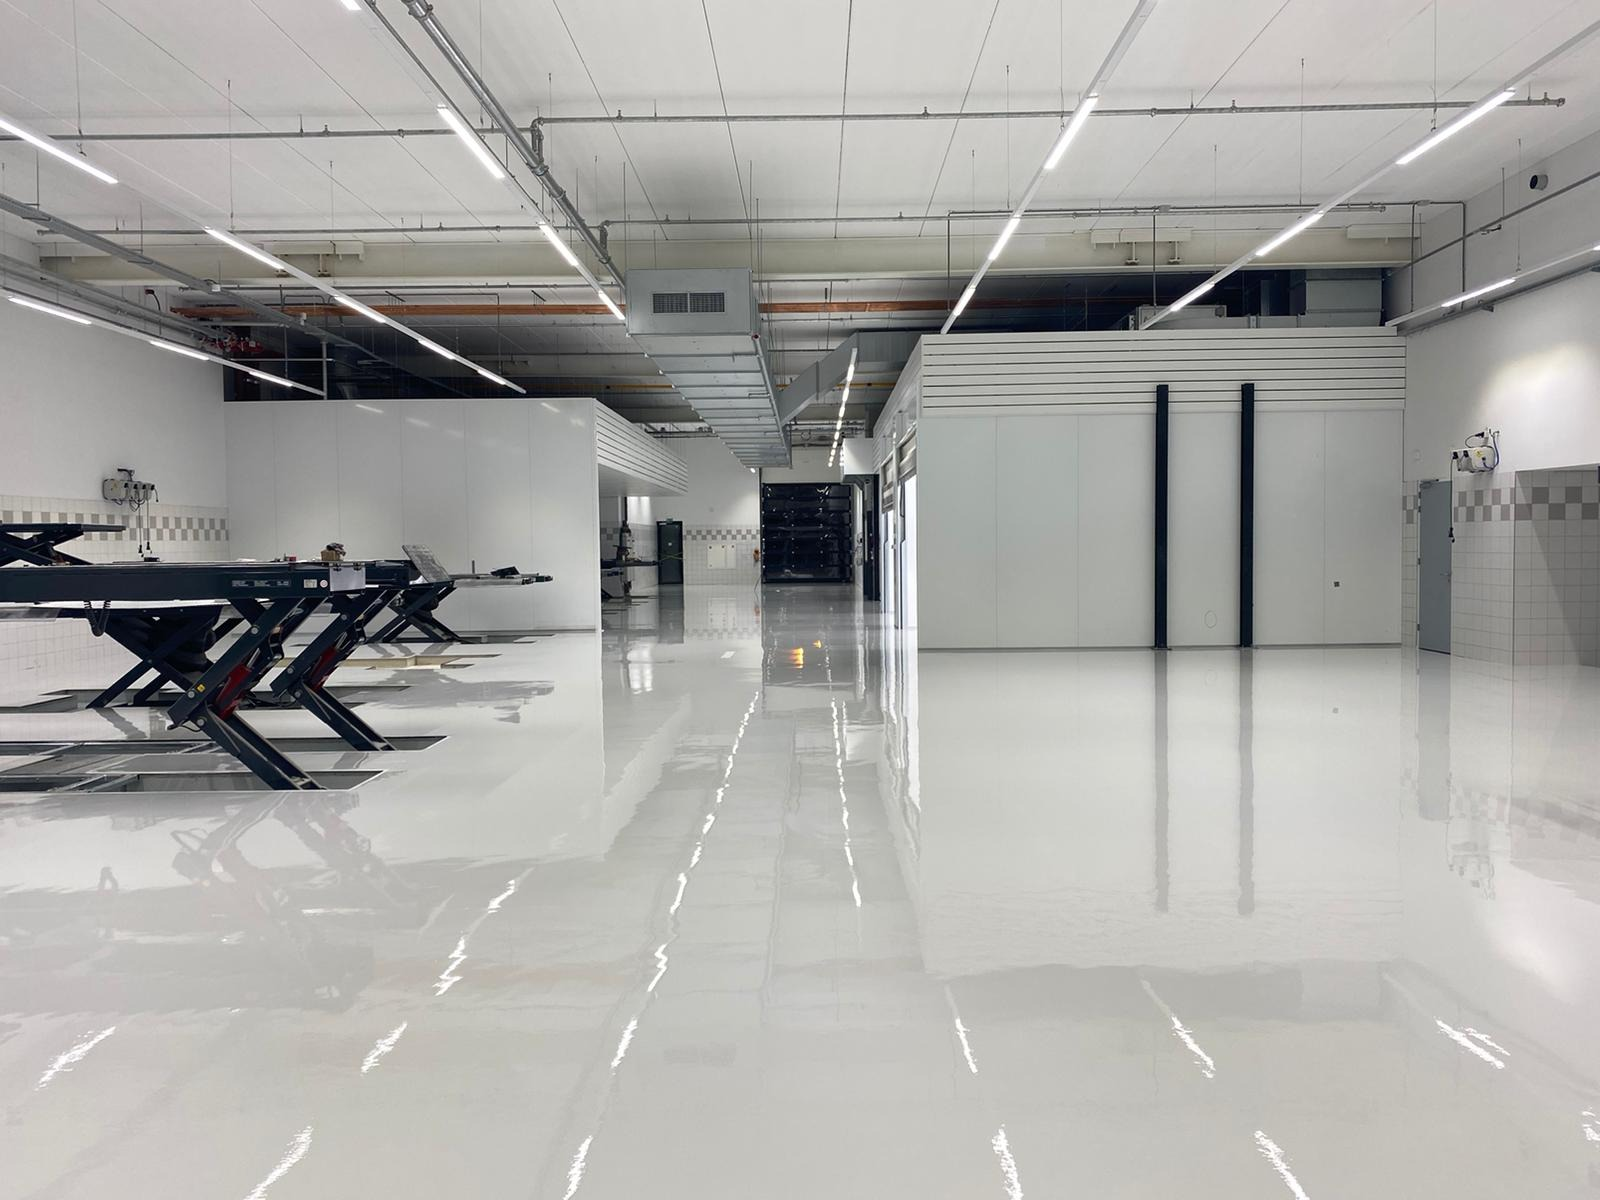 Casting floor agricultural sector